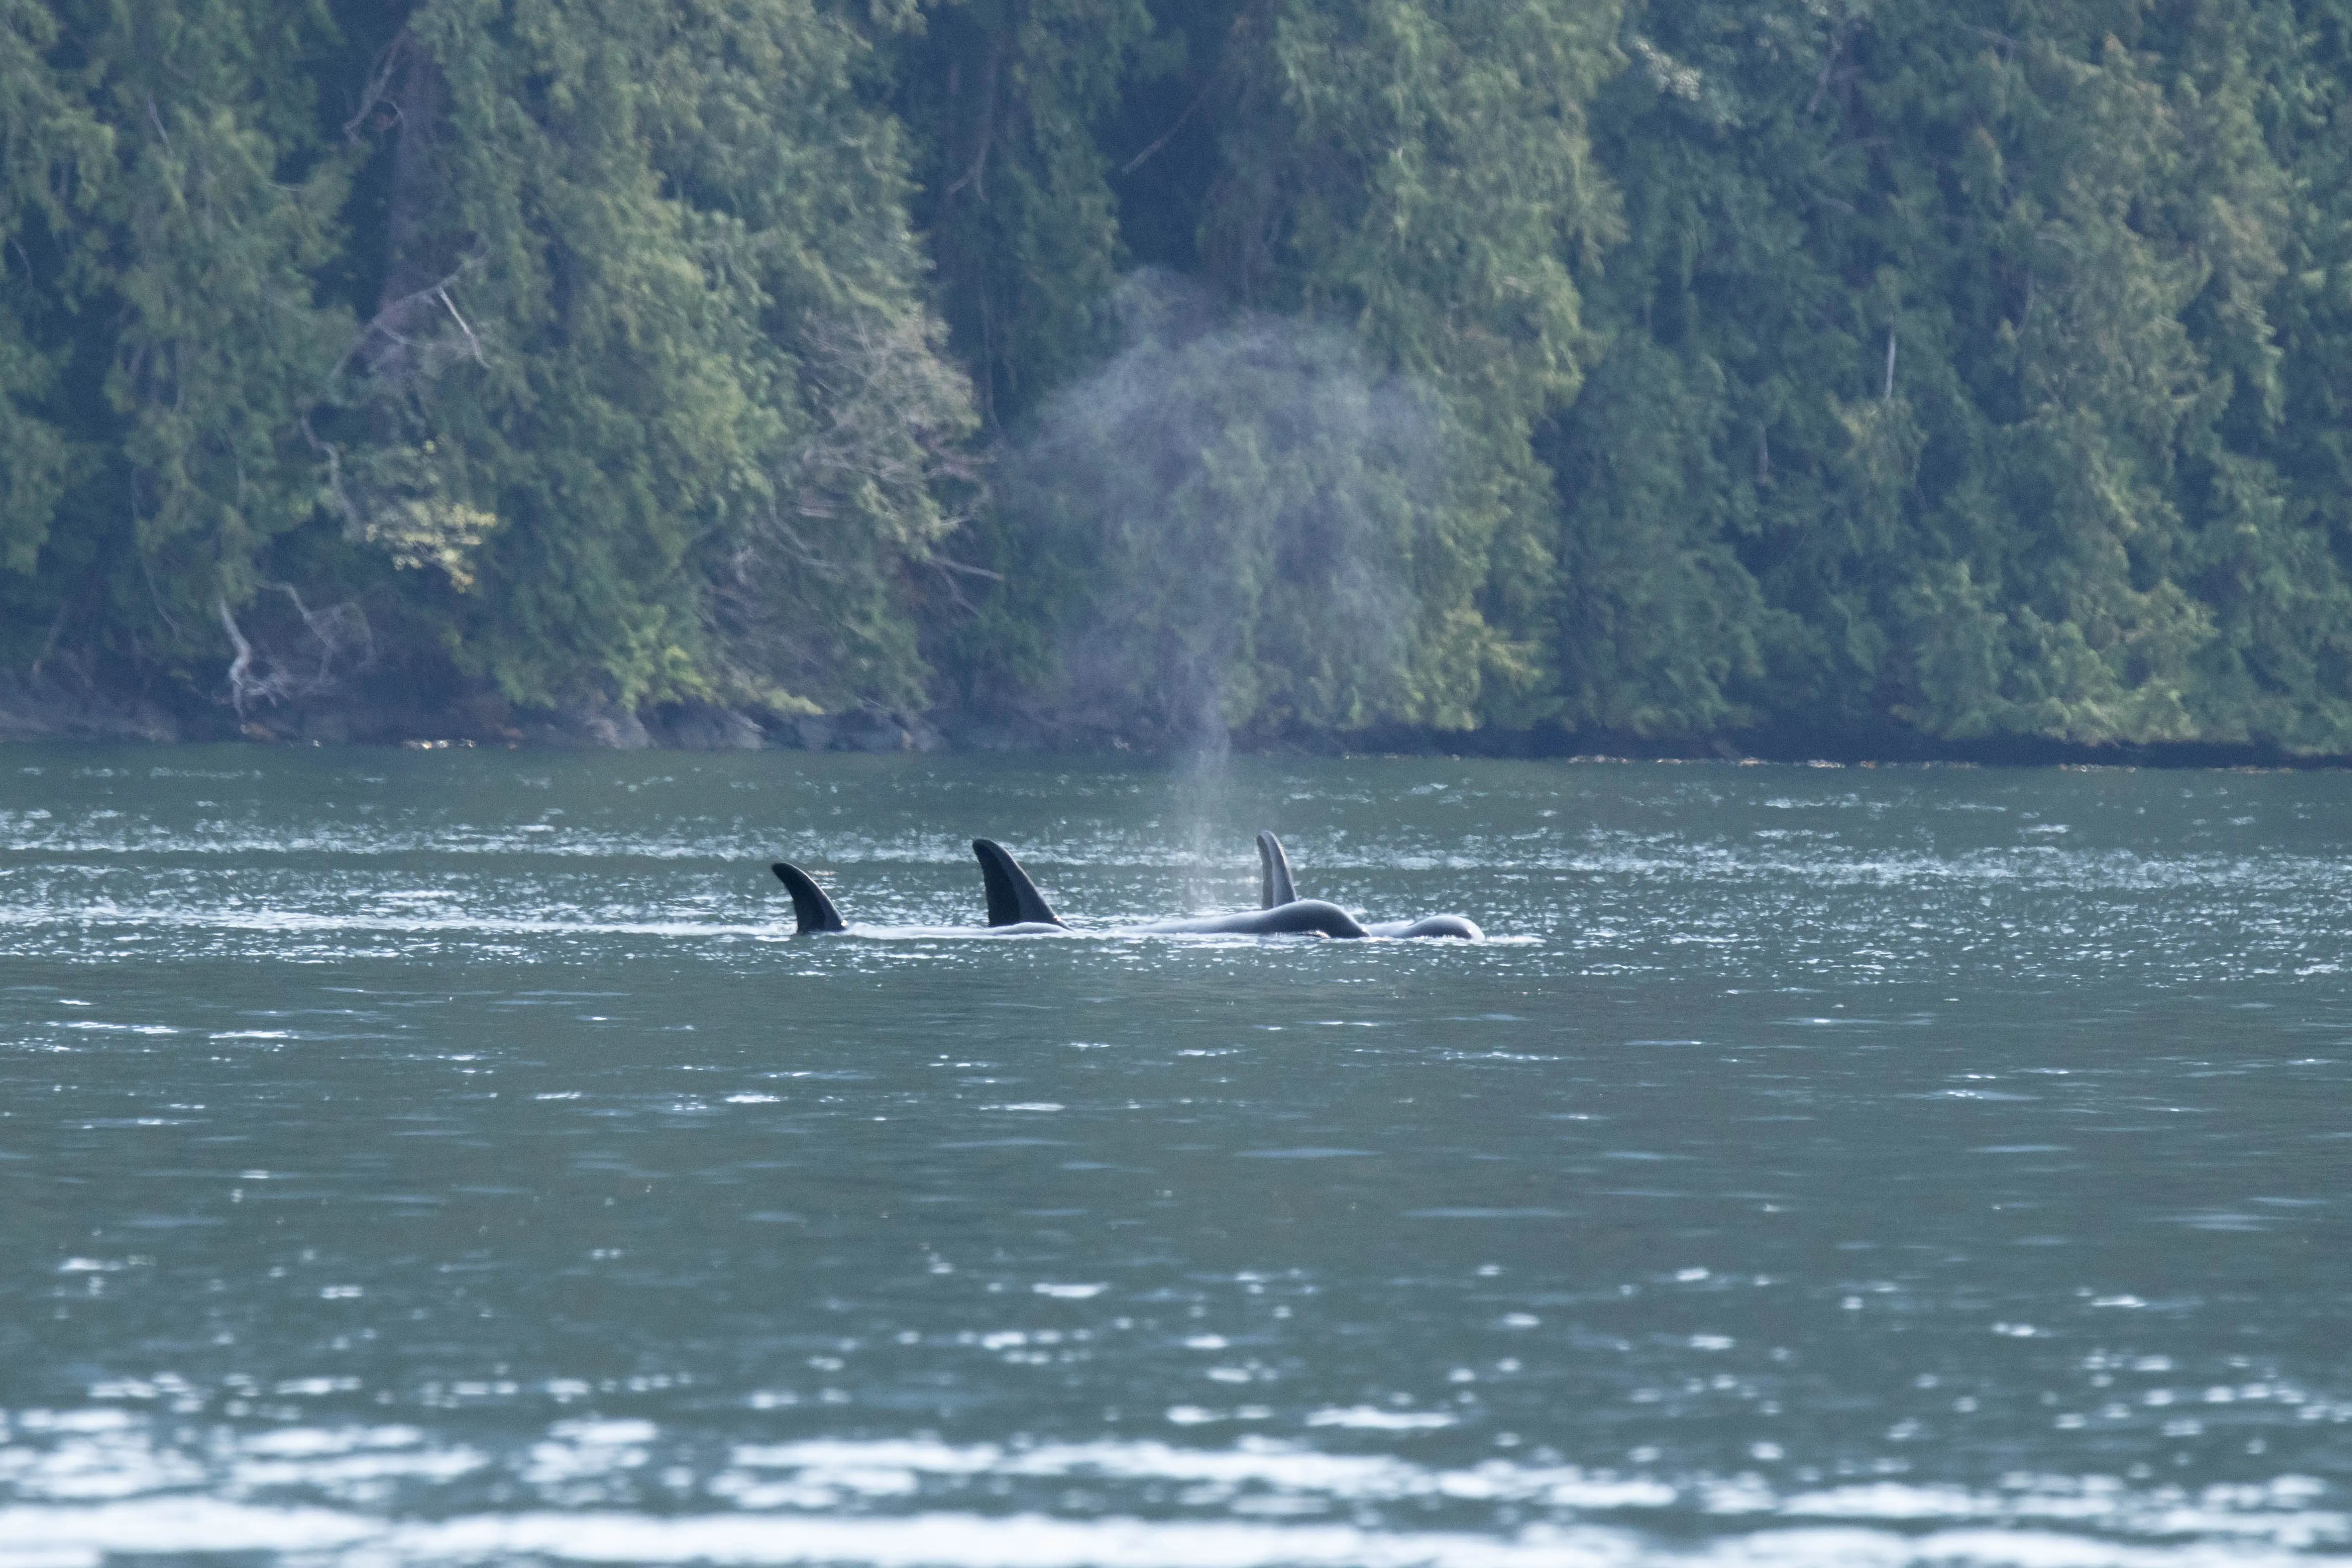 Orca Family, Discovery West Adventures, Whale Watching, Whale Watching Campbell River, BC, Brown's Bay Resort